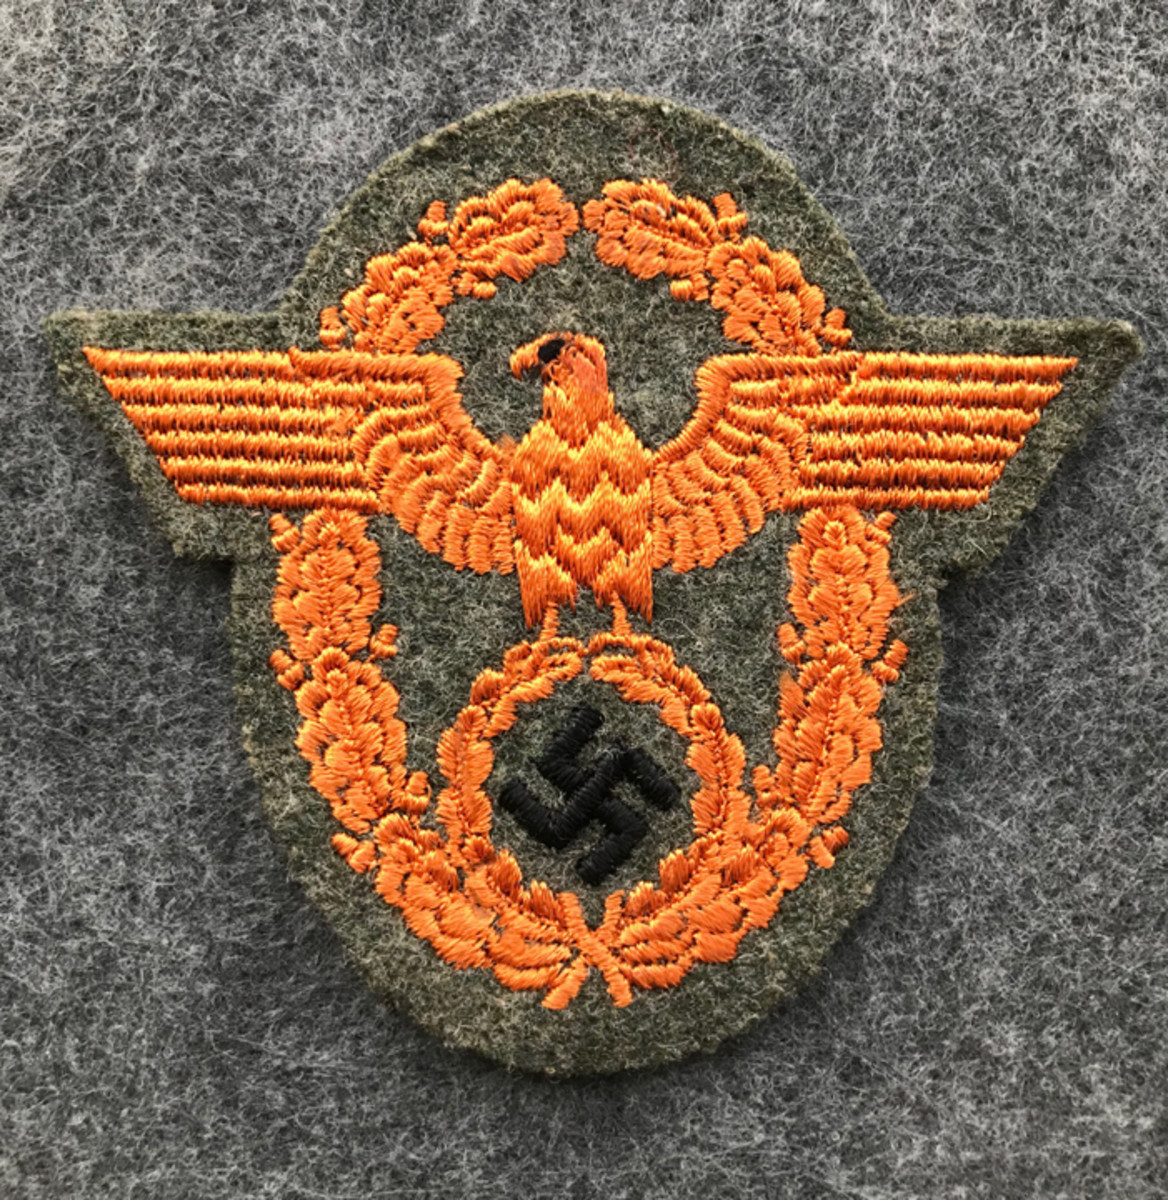 A German Enlisted Gendarmerie sleeve eagle. This type of police patch is constructed with a machine embroidered orange eagle with black swastika on grey wool cloth. This type of German WWII police patch retails for around $50-$70.